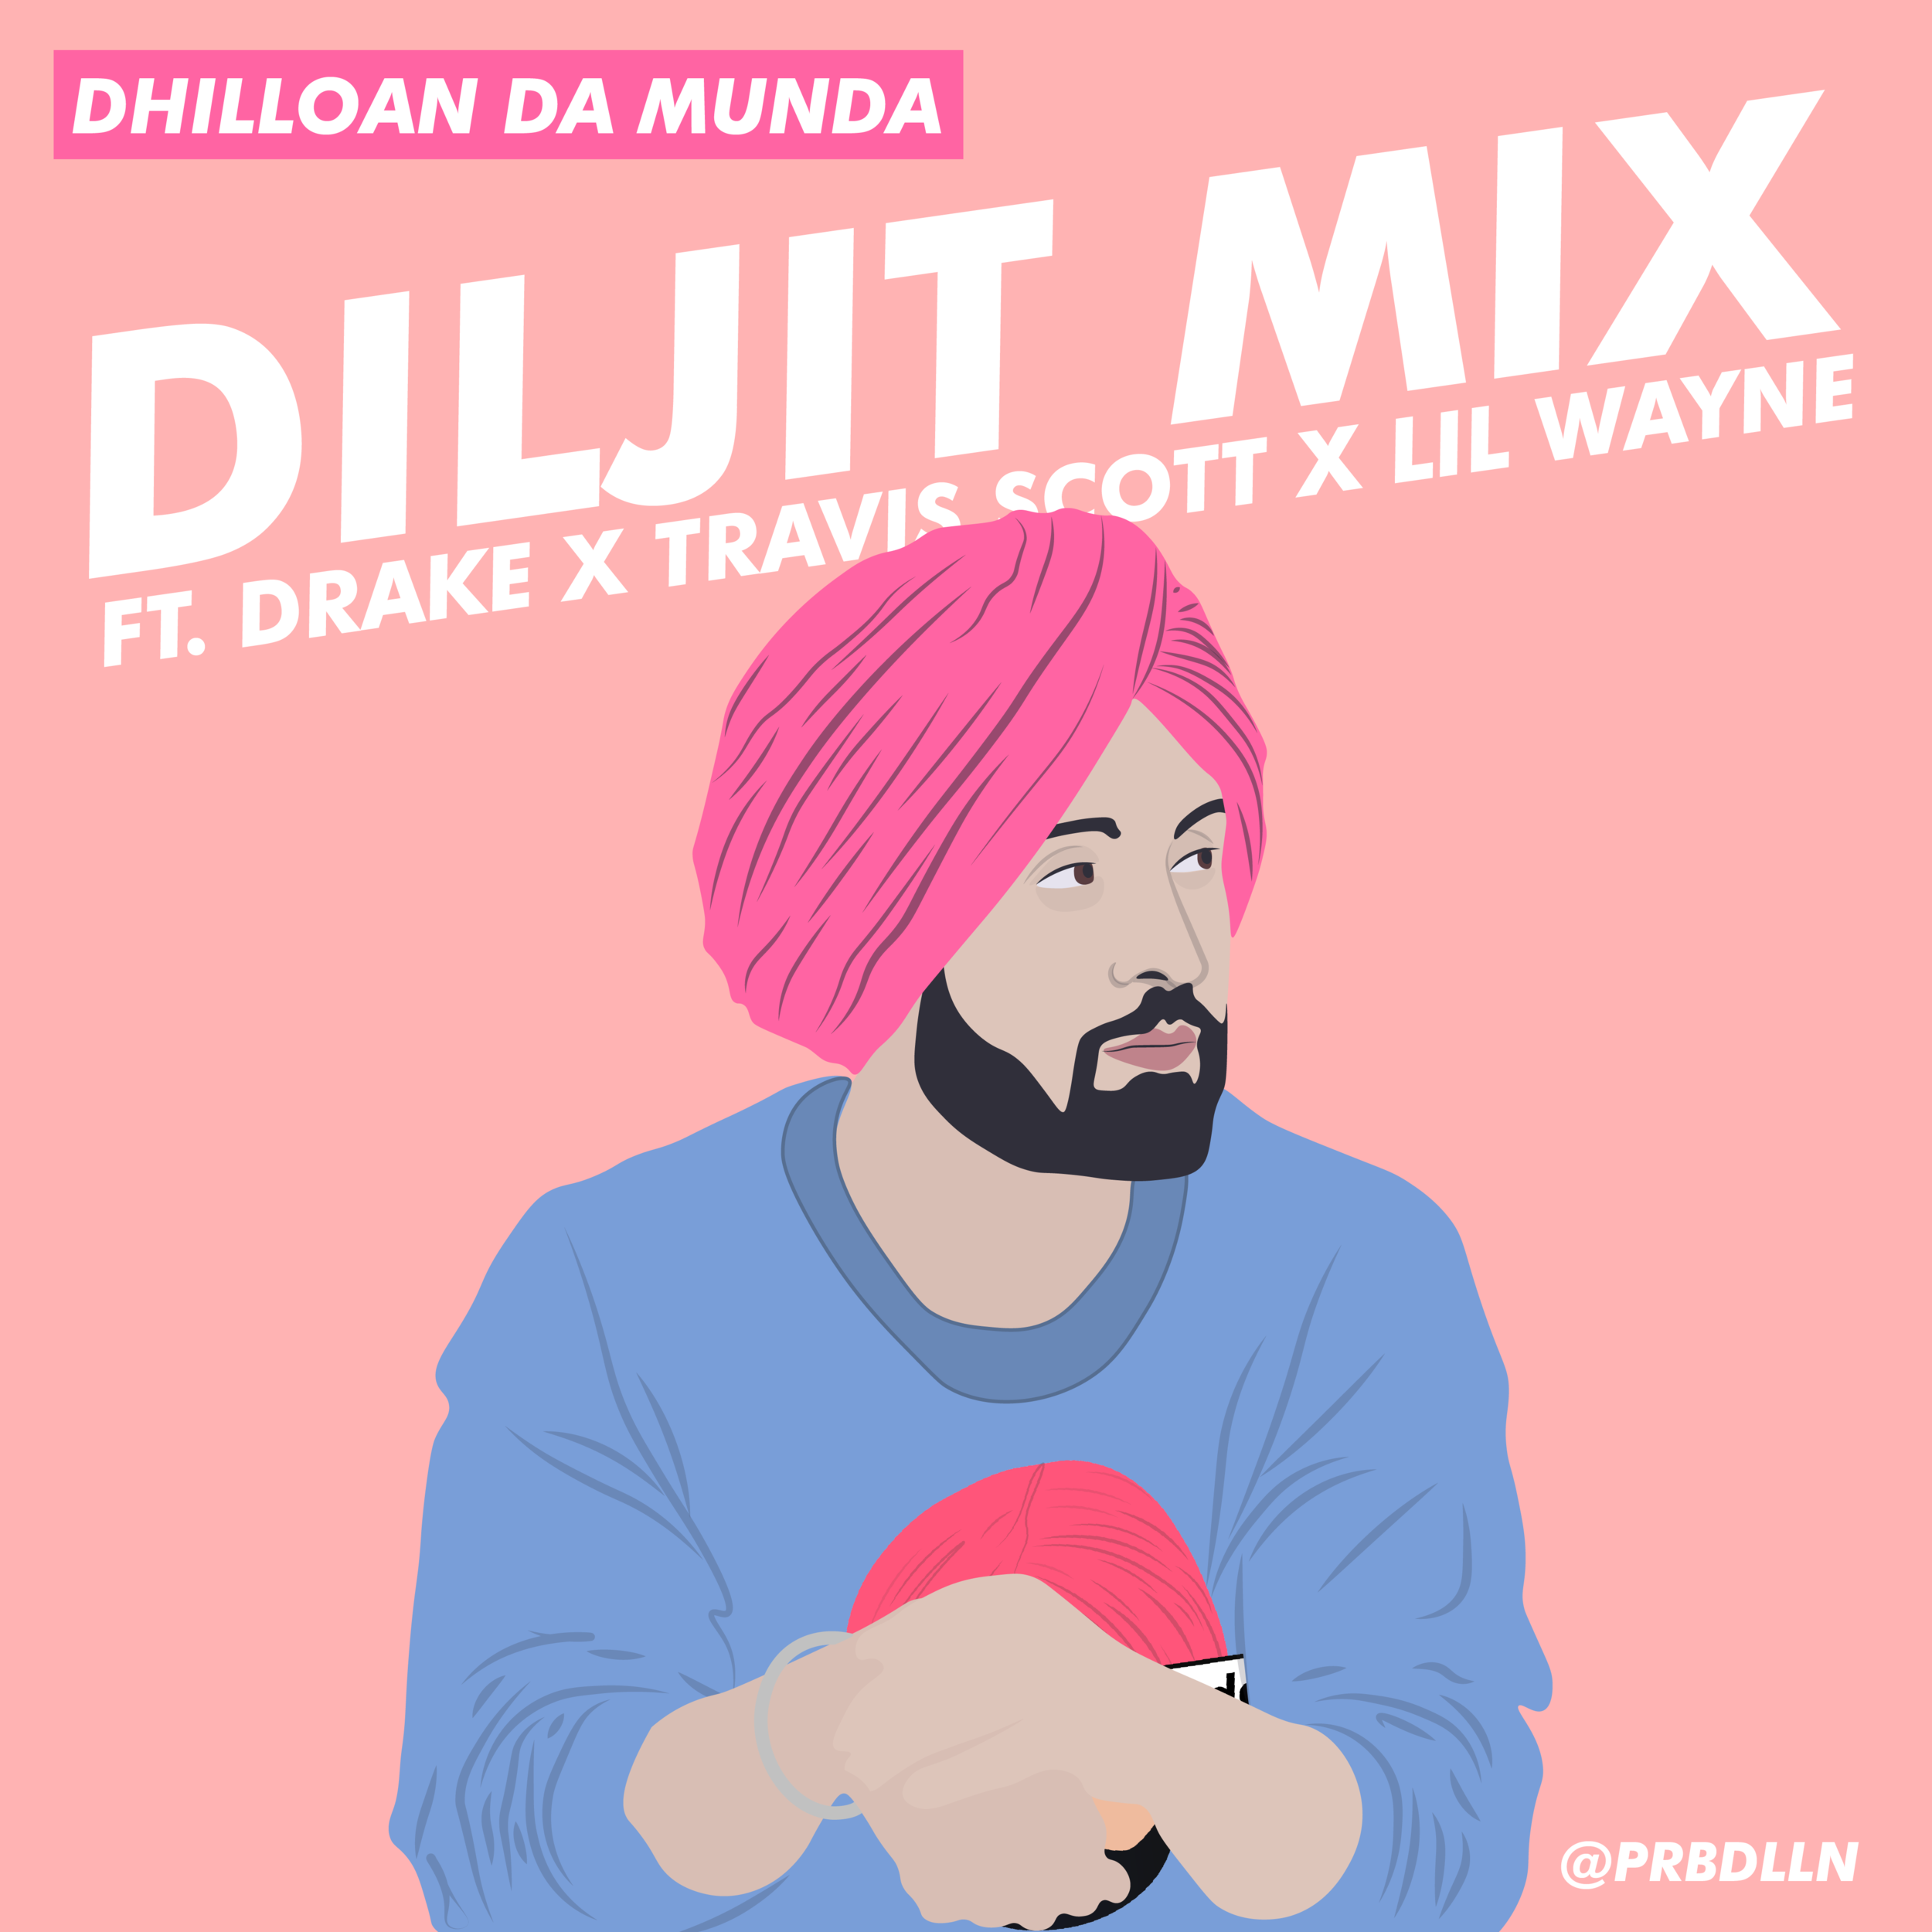 DILJIT MIX - Here's a quick new remix I made of some Diljit songs. Featuring Drake, Travis Scott, and Lil Wayne.